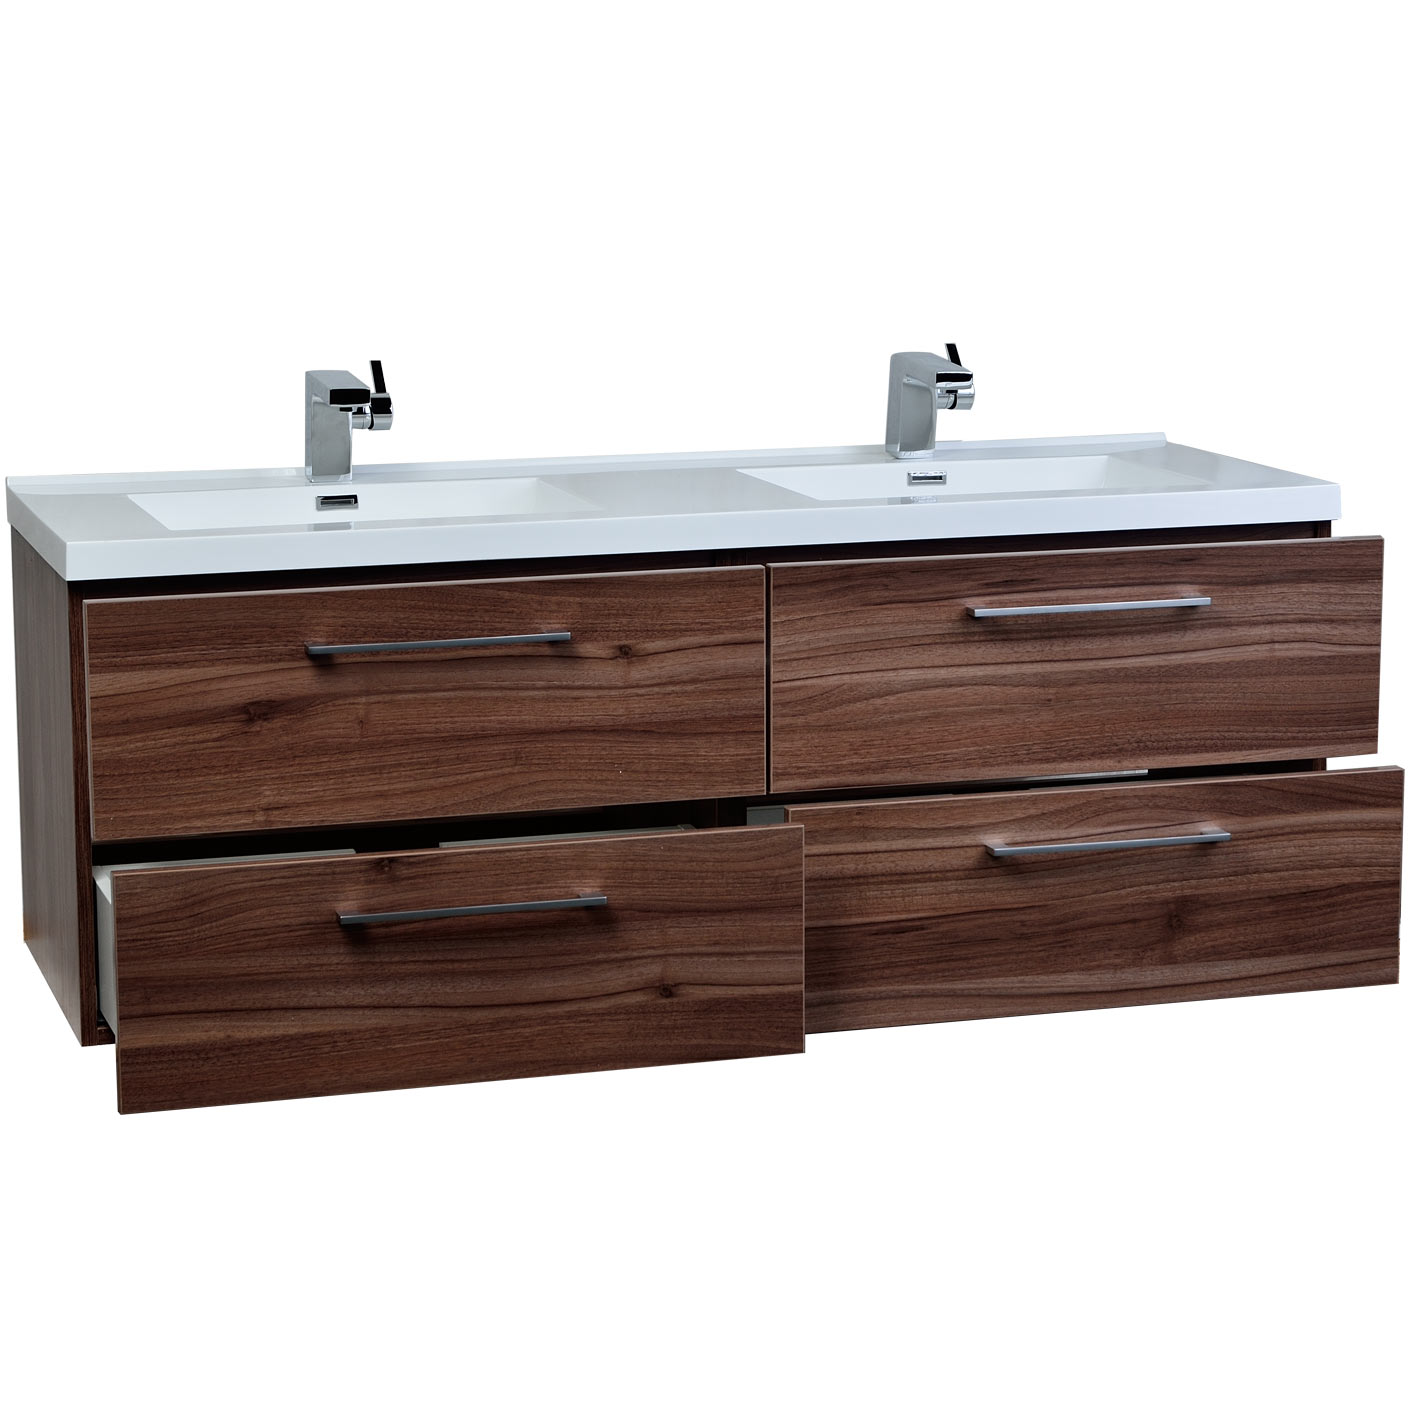 vanities company mount north price frm ruehlen htm available not vanity supply wall carolina